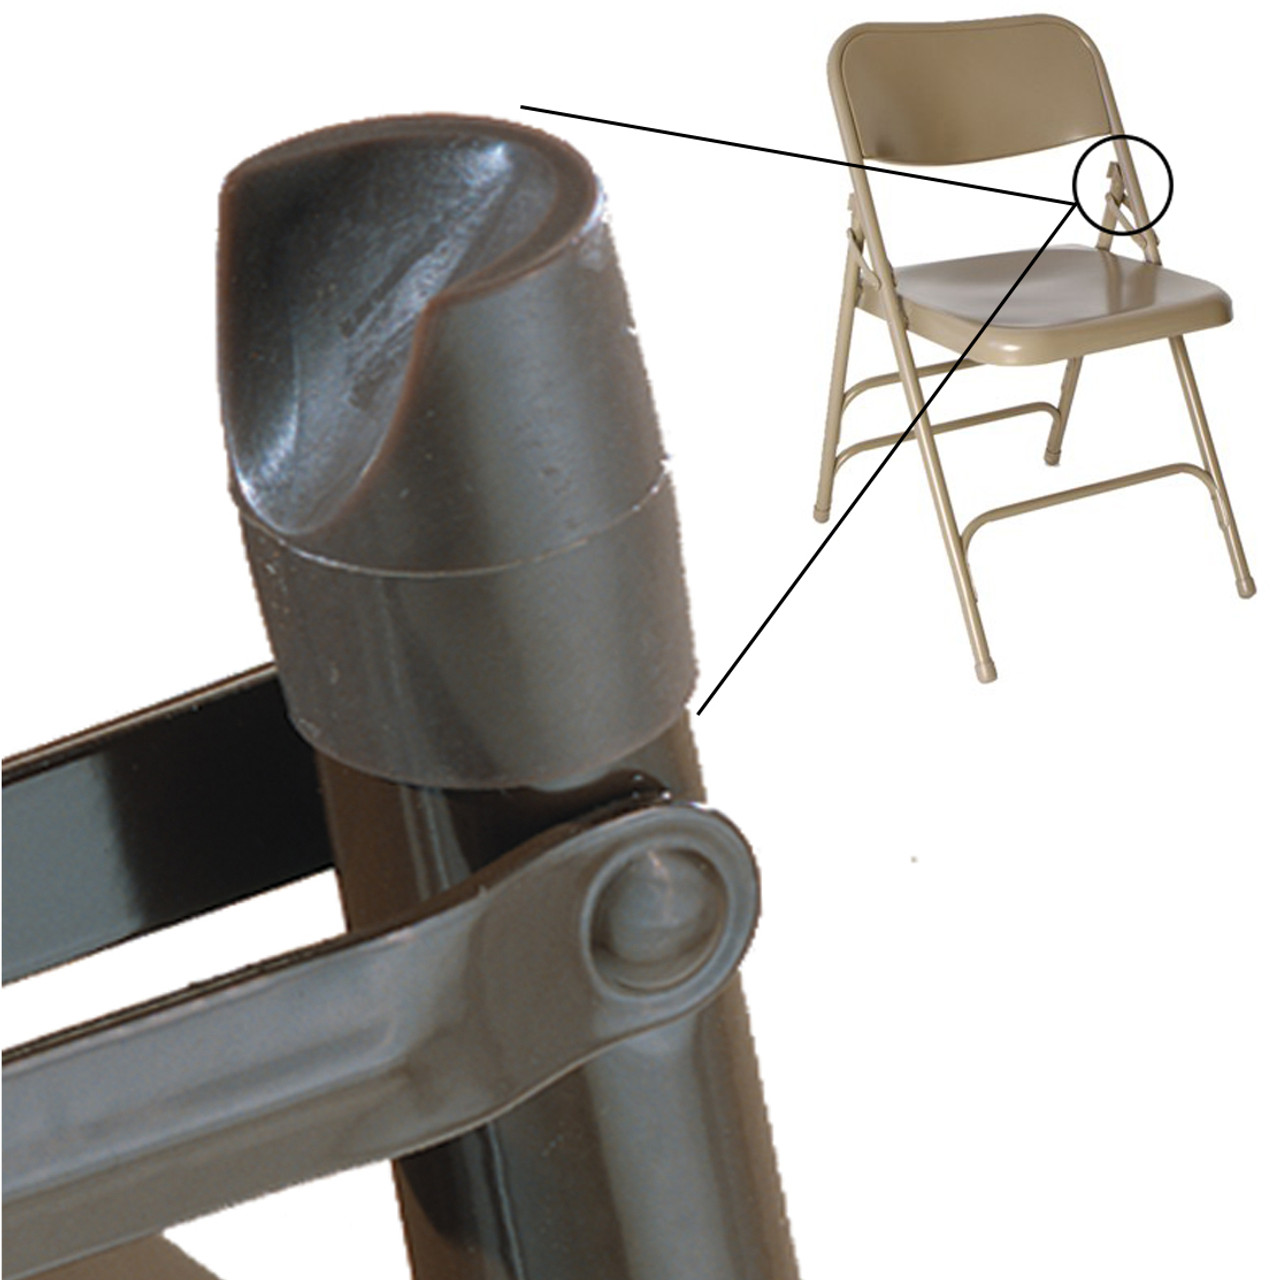 folding chair leg covers wedding cheshire individual pieces plastic stability caps for metal and padded chairs fits 7